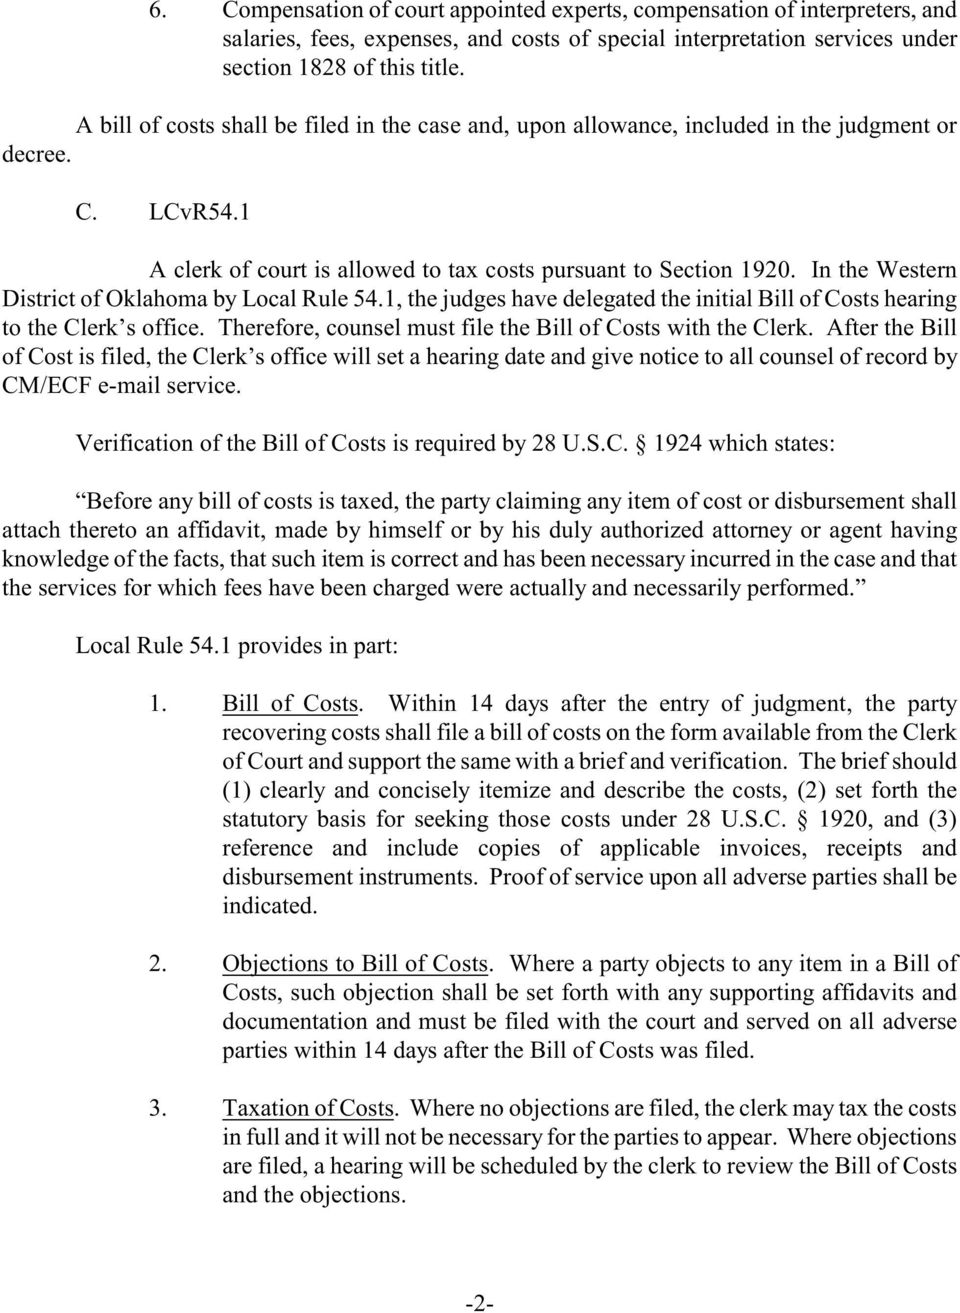 In e Western District of Oklahoma by Local Rule 54.1, e judges have delegated e initial Bill of Costs hearing to e Clerk s office. Therefore, counsel must file e Bill of Costs wi e Clerk.